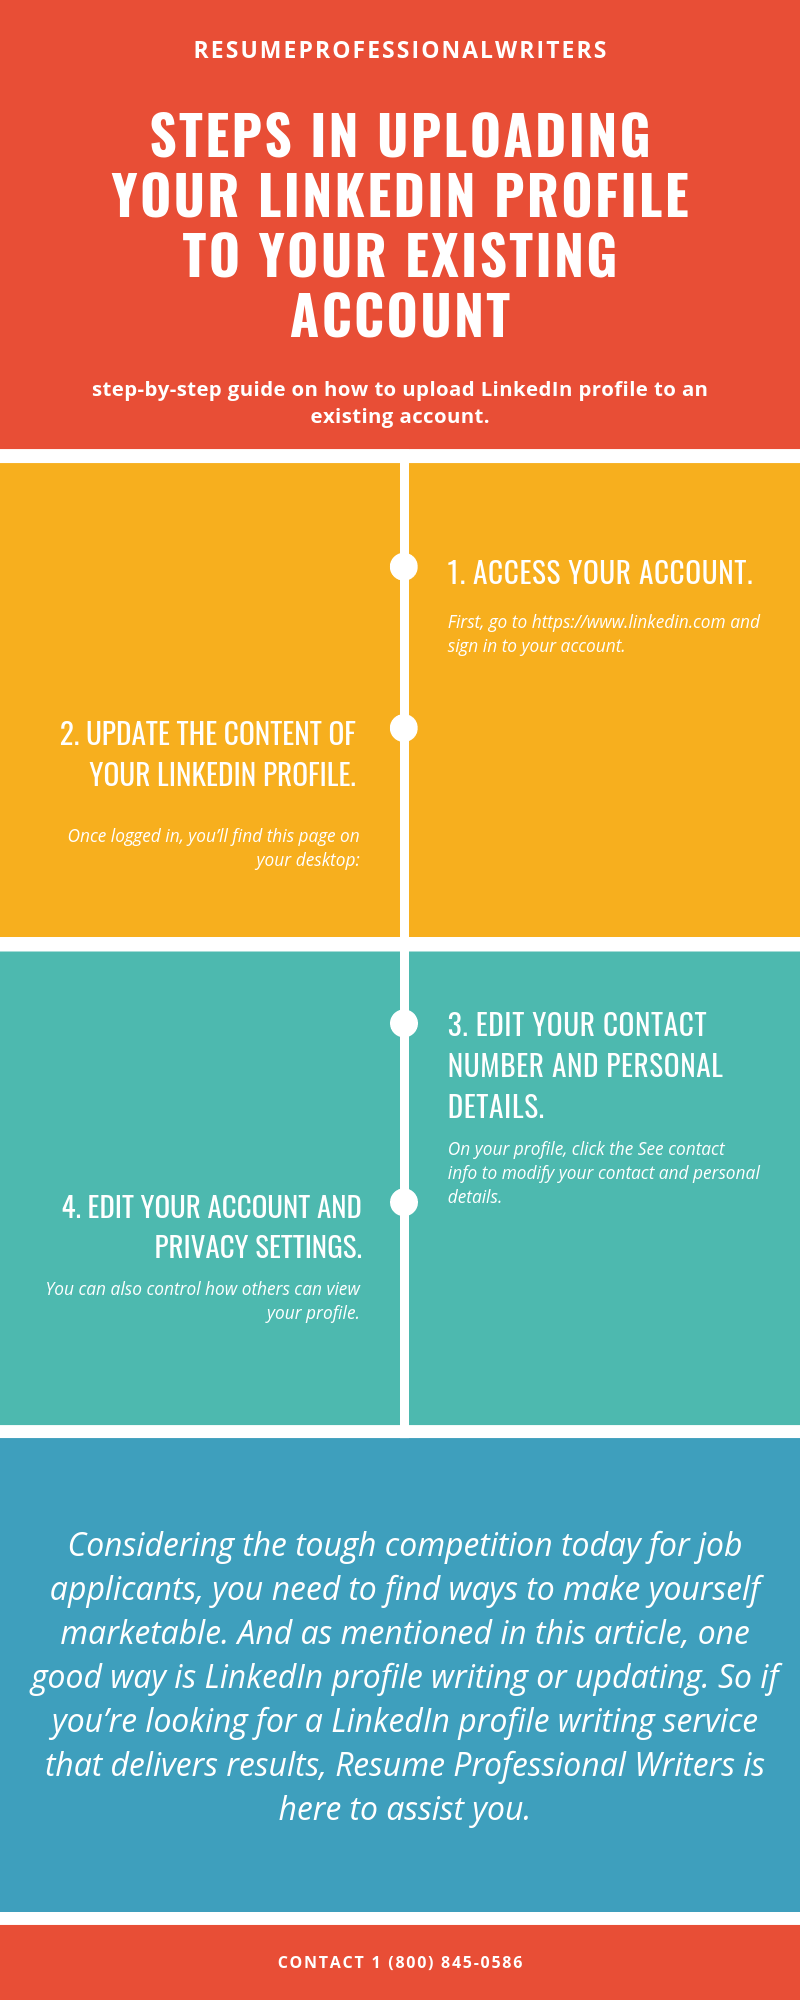 LinkedIn Profile StepbyStep Guide to Help Improve Your